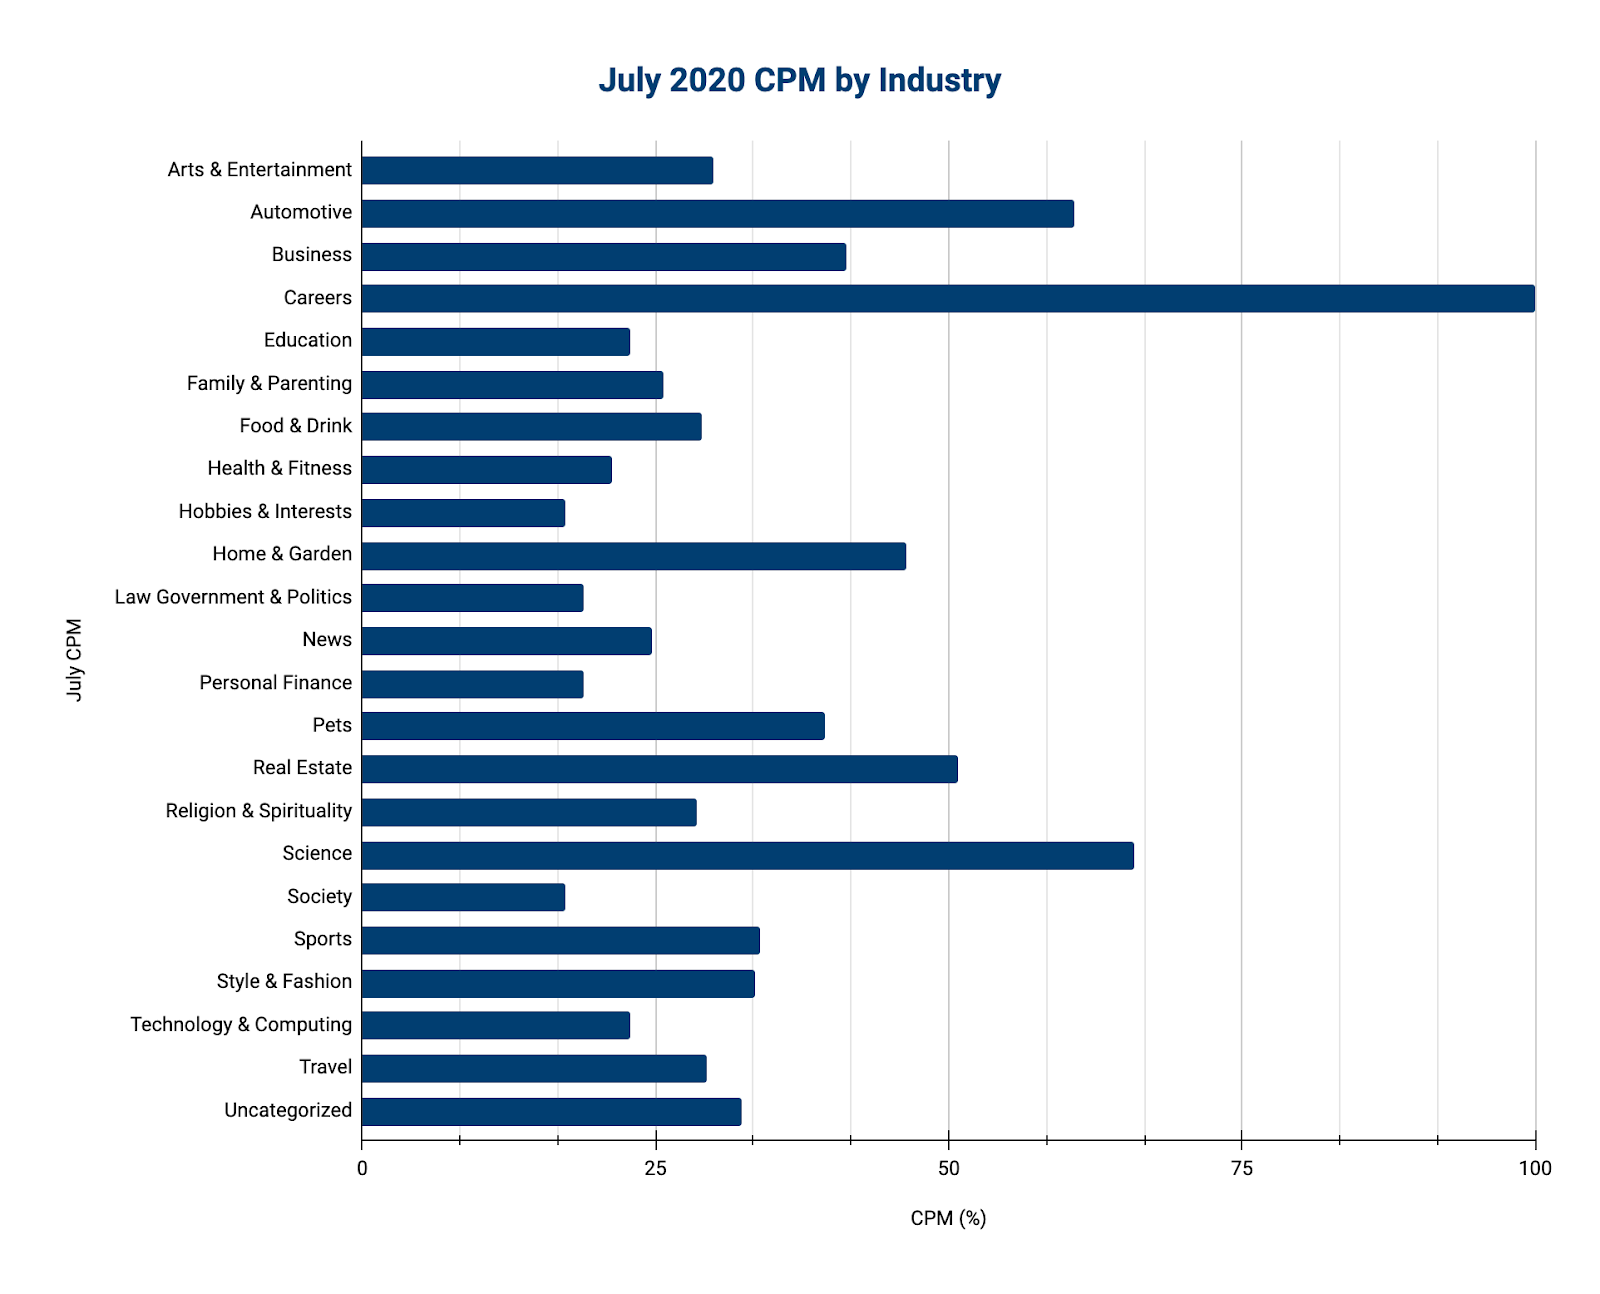 July 2020 CPM by Industry